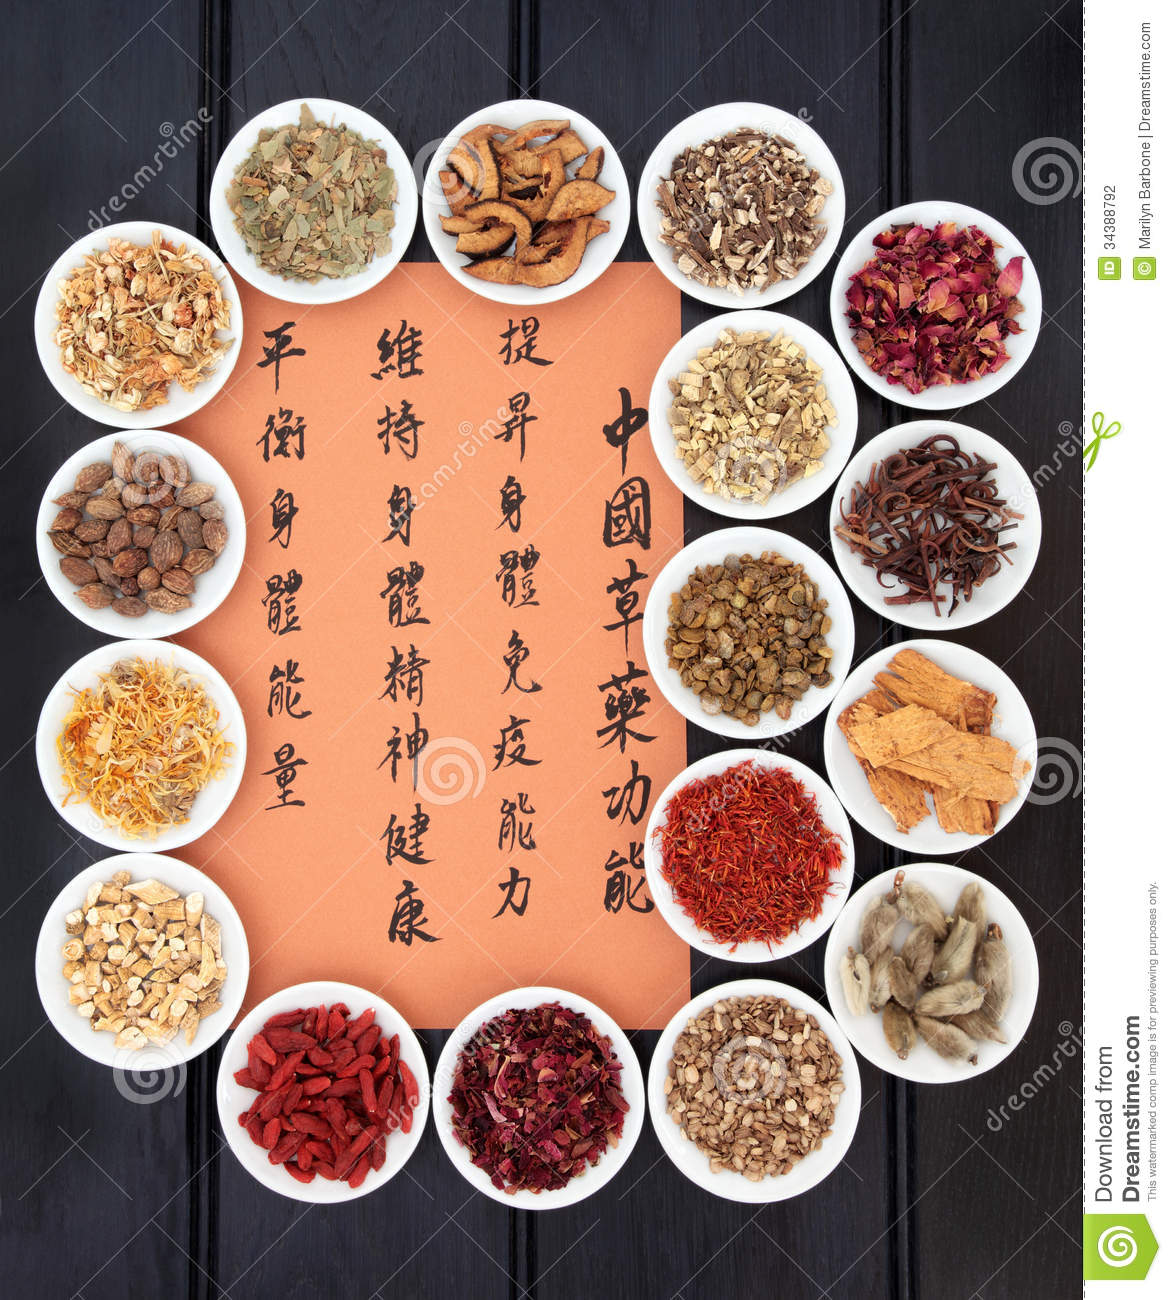 thesis on traditional chinese medicine Objective - this thesis was written to analyze the effects of traditional chinese medicine (acupuncture as well as herbs) and naturopathic medicine in the treatment of idiopathic infertility.